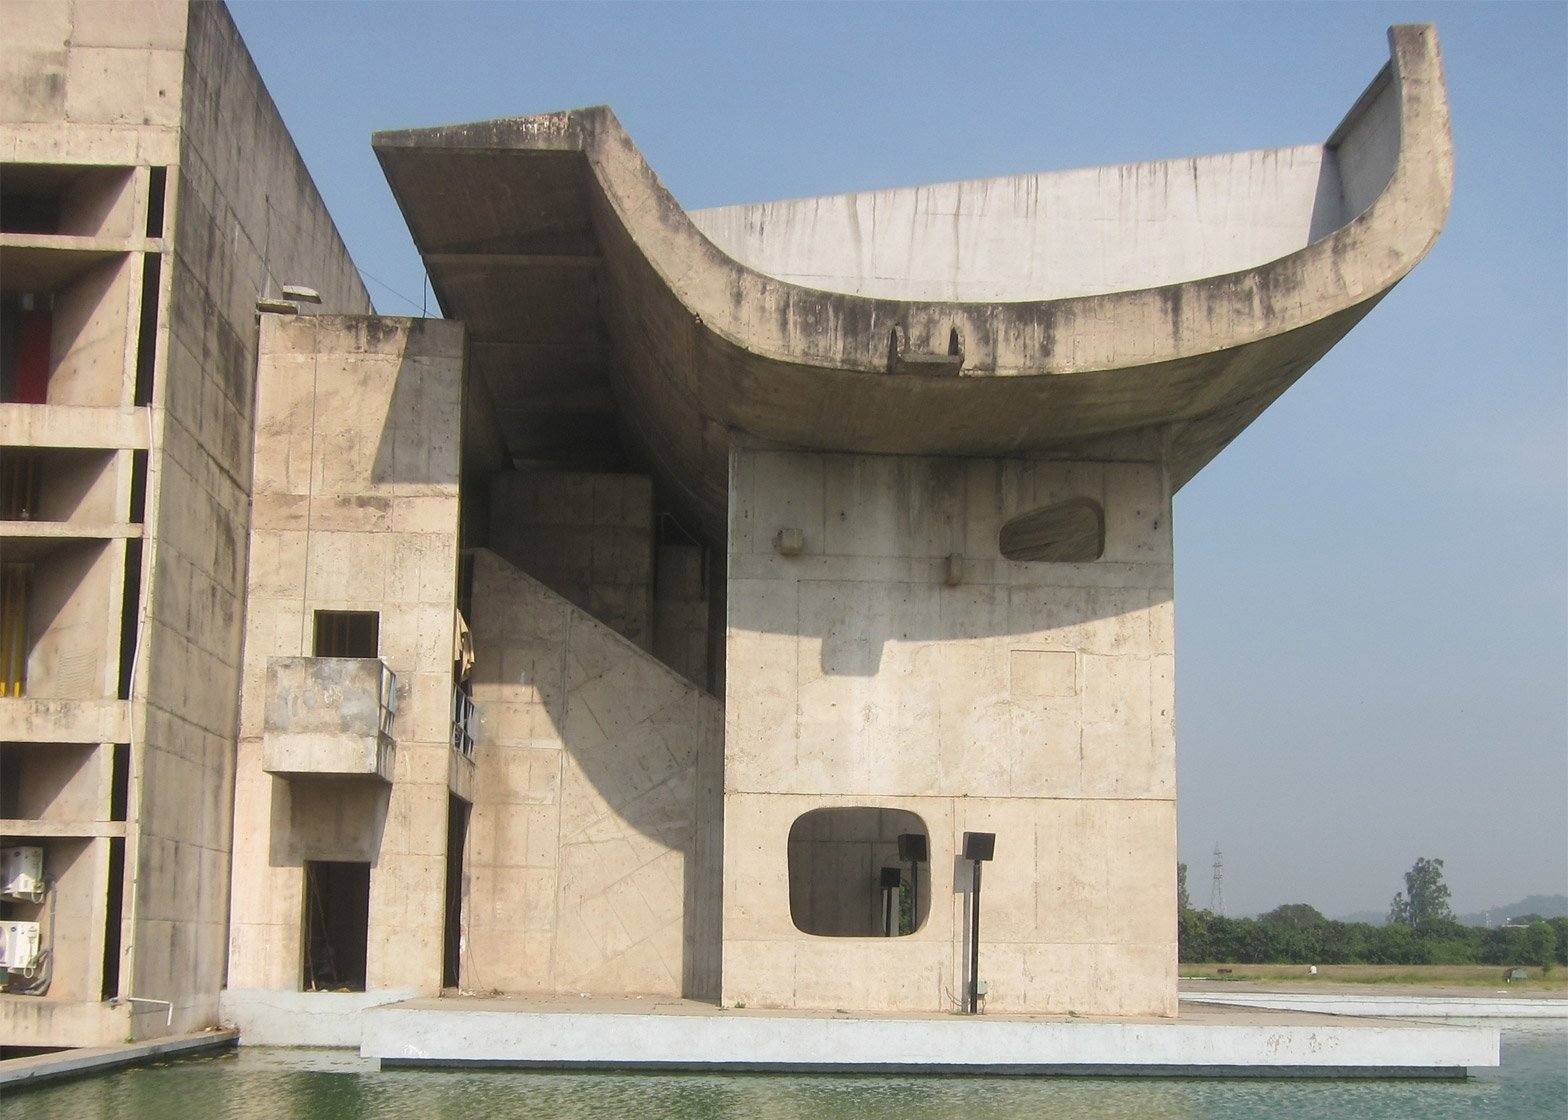 Legislative Assembly, Complexe du Capitole, Chandigarh, India, 1952